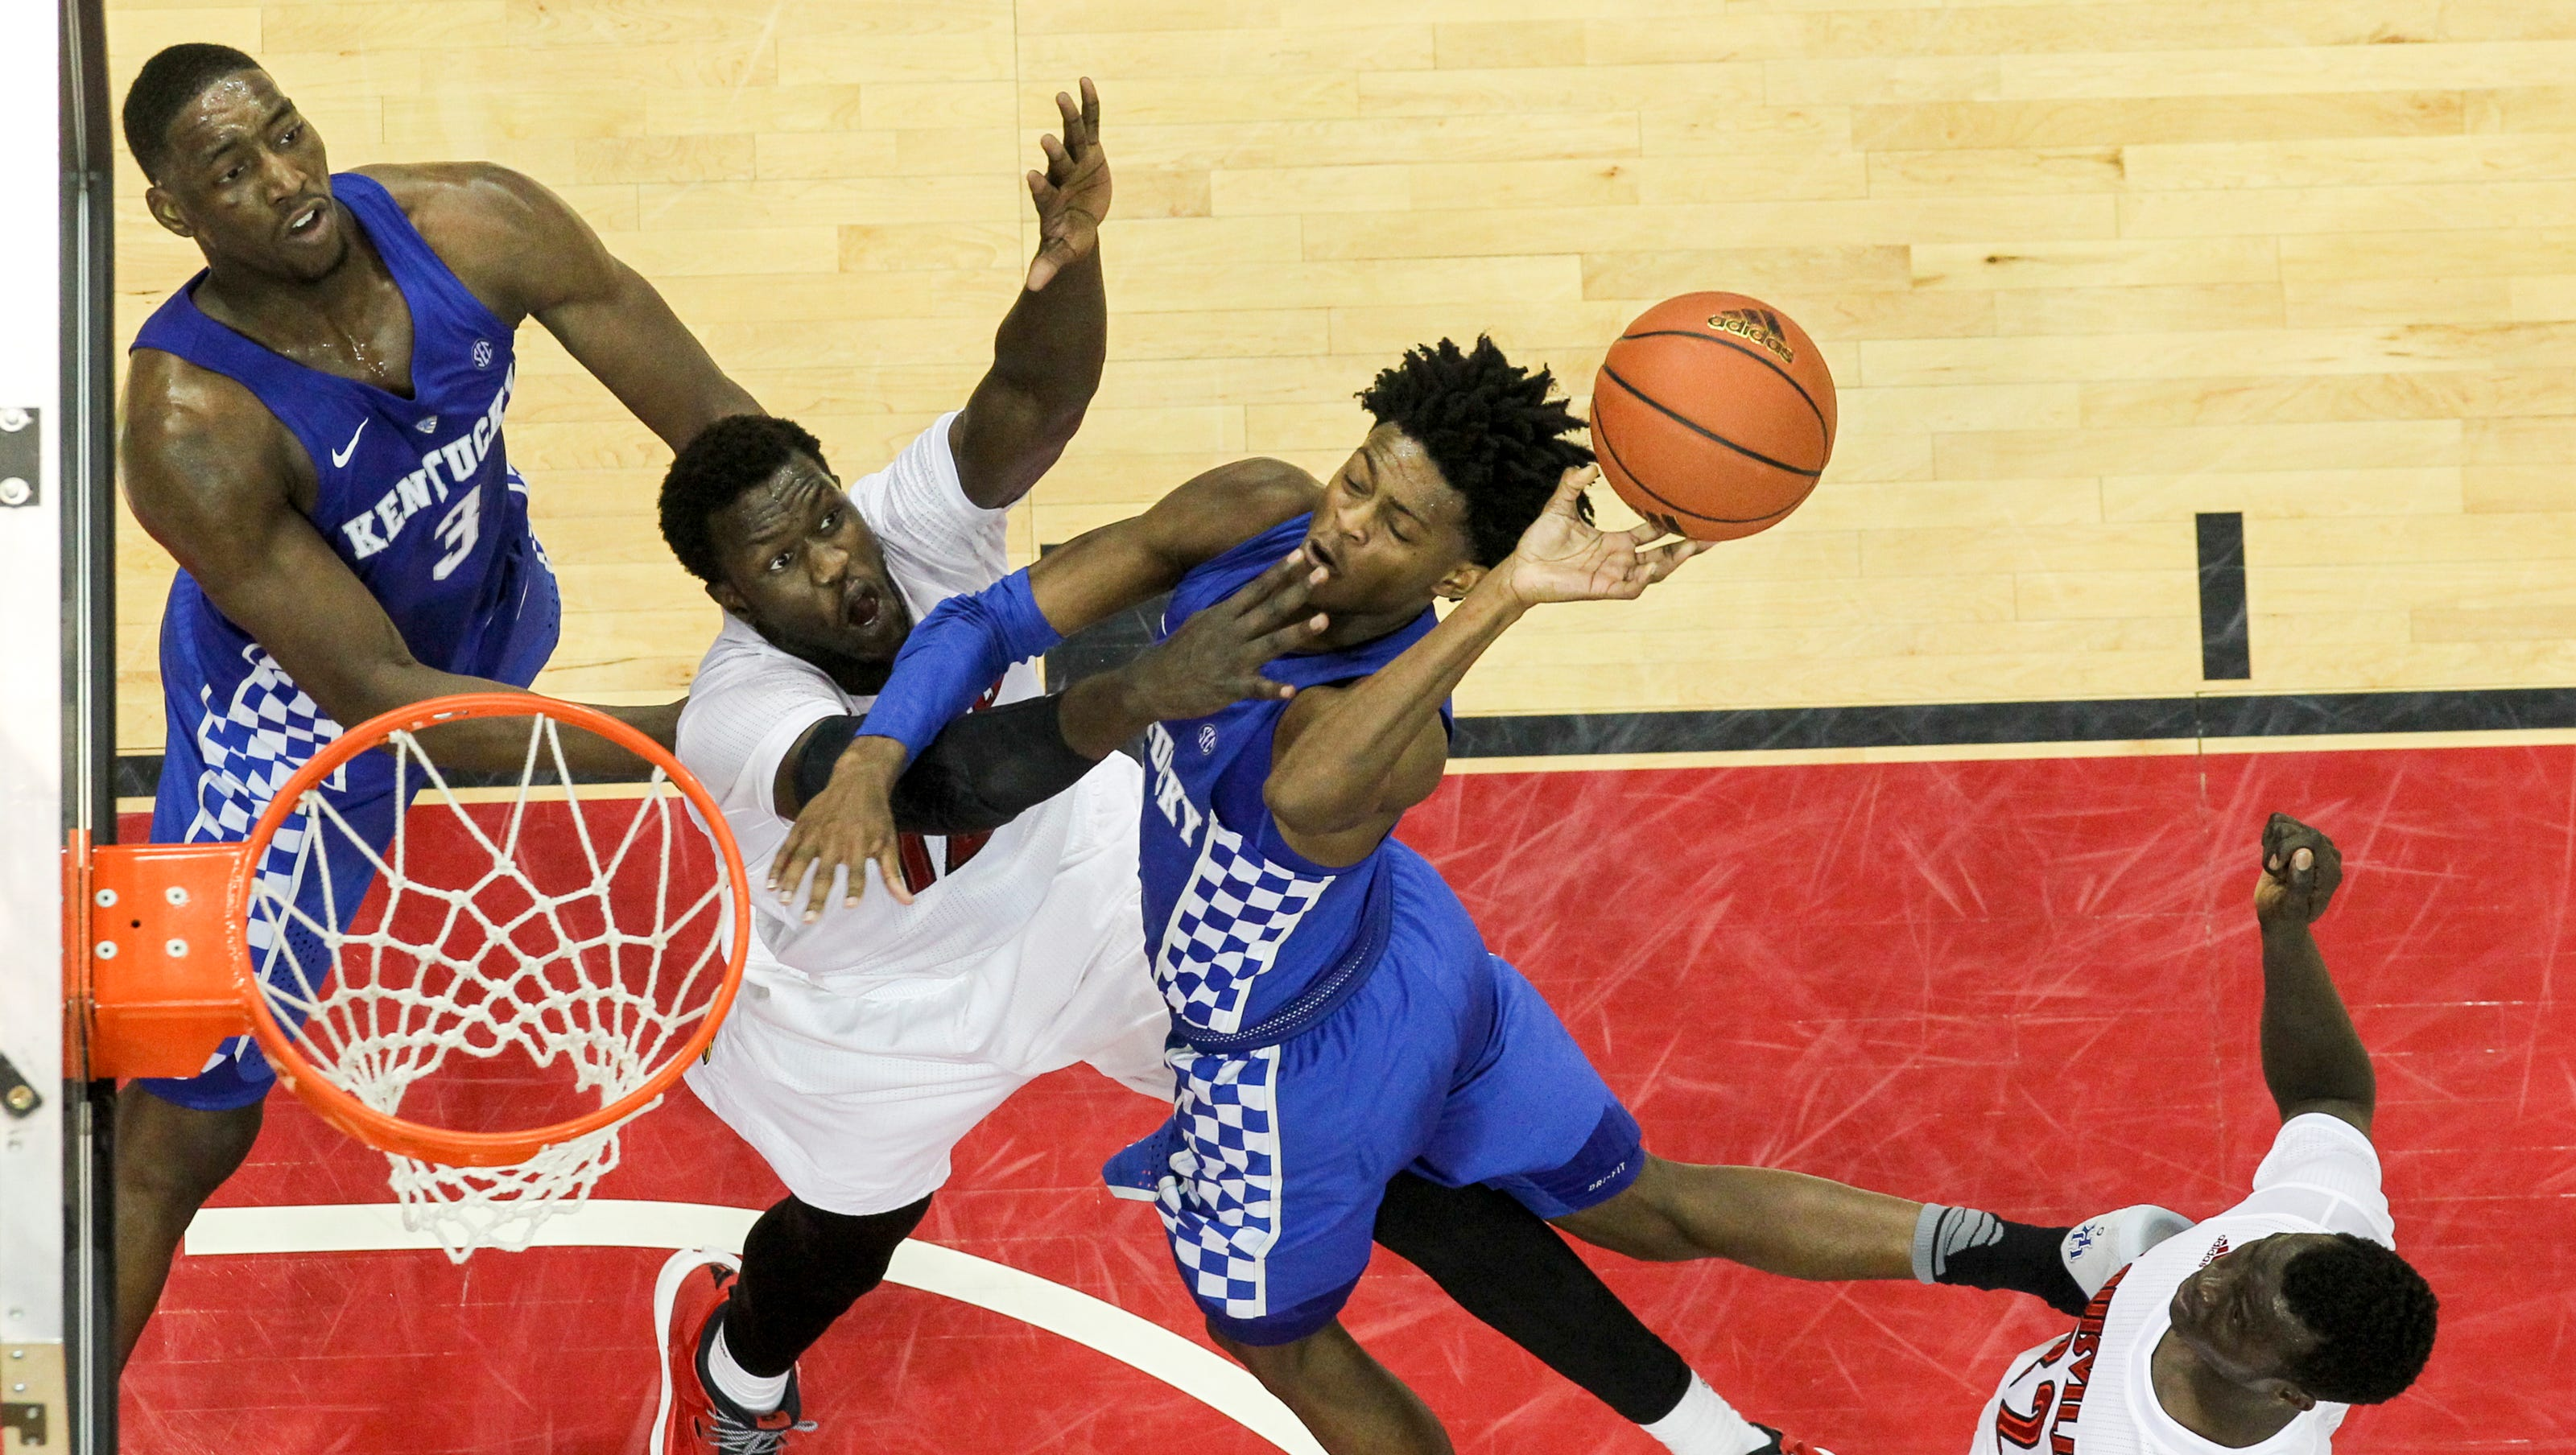 Kentucky Basketball Announces Tv Schedule Game Times And: Why Is The Kentucky-Louisville Basketball Game On A Friday